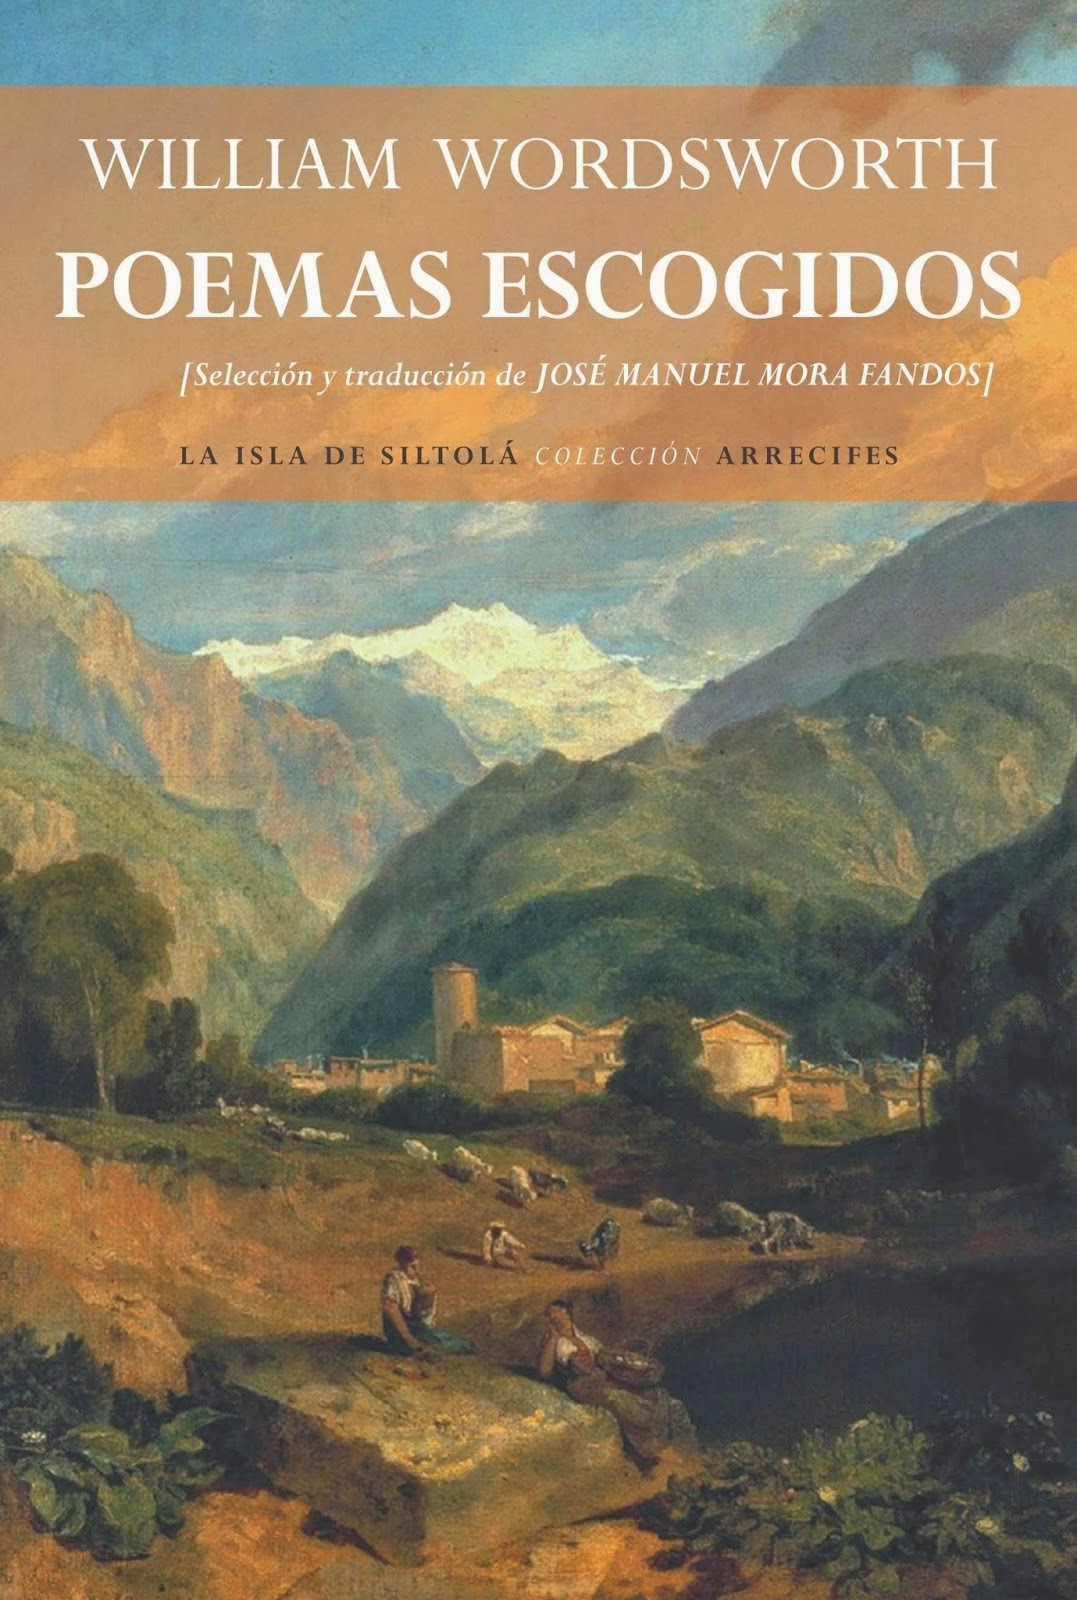 http://encuentrosconlasletras.blogspot.com.es/2015/04/poemas-escogidos-de-william-wordsworth.html